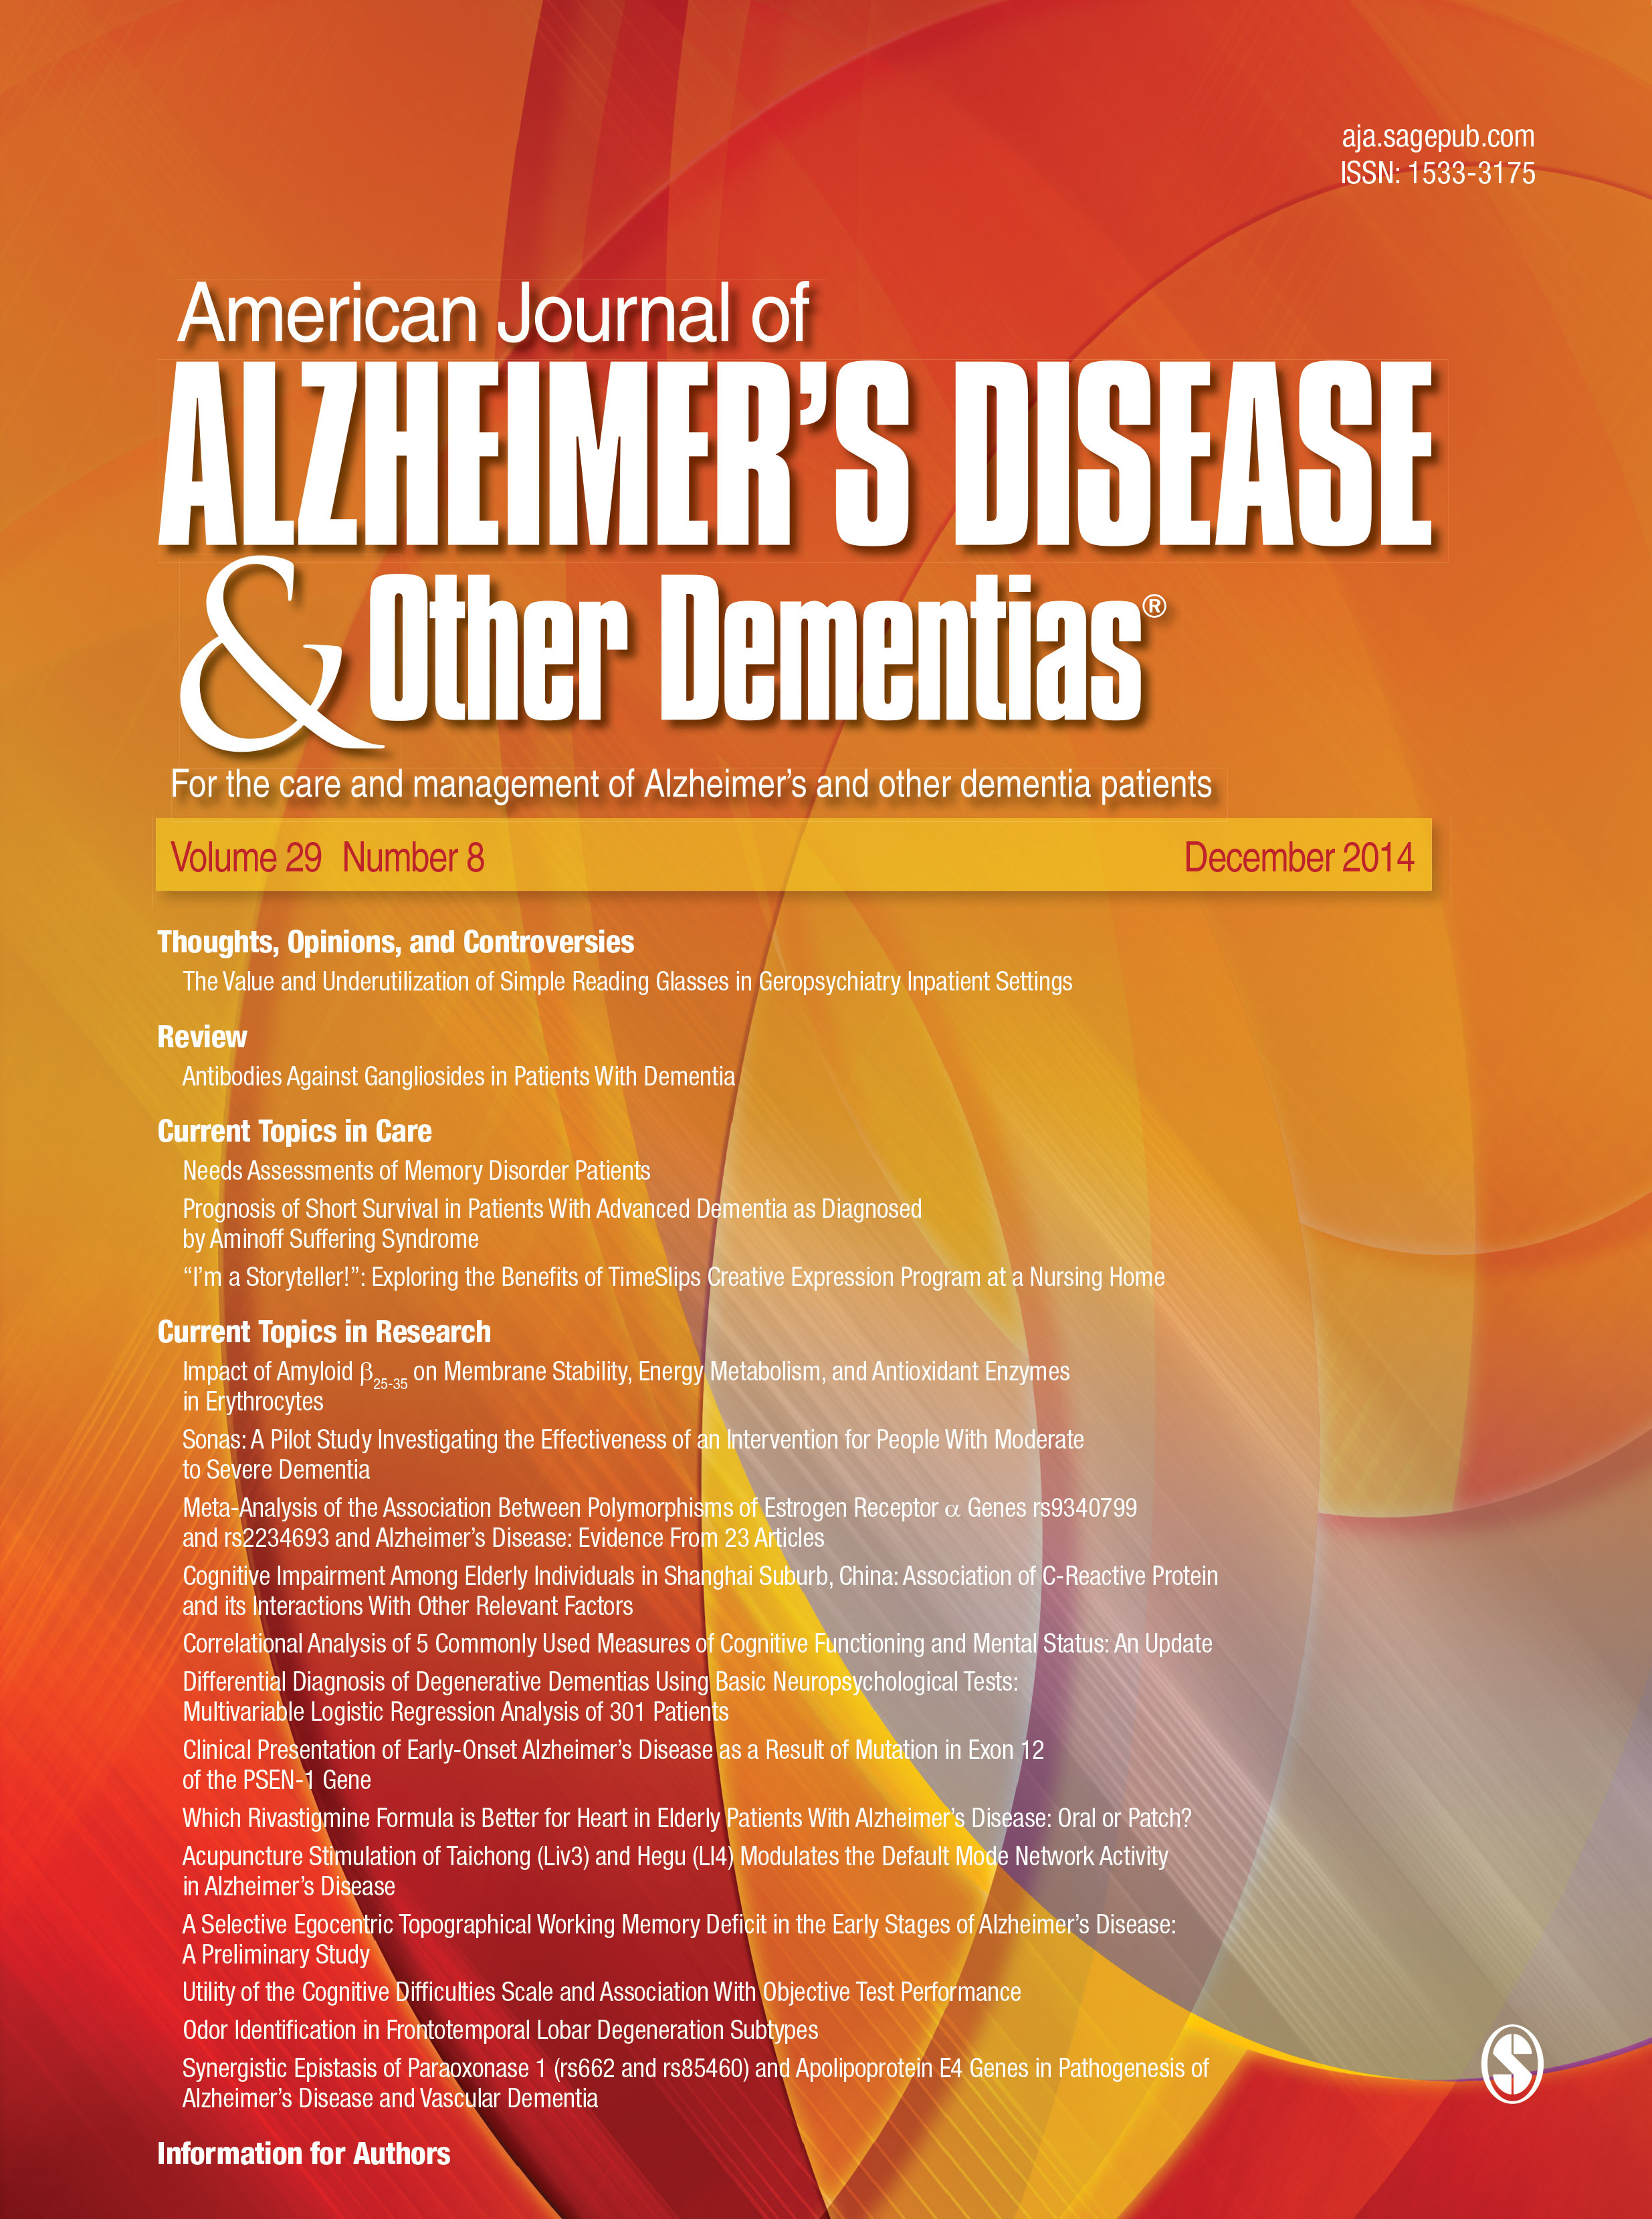 American Journal of Alzheimer's Disease & Other Dementias